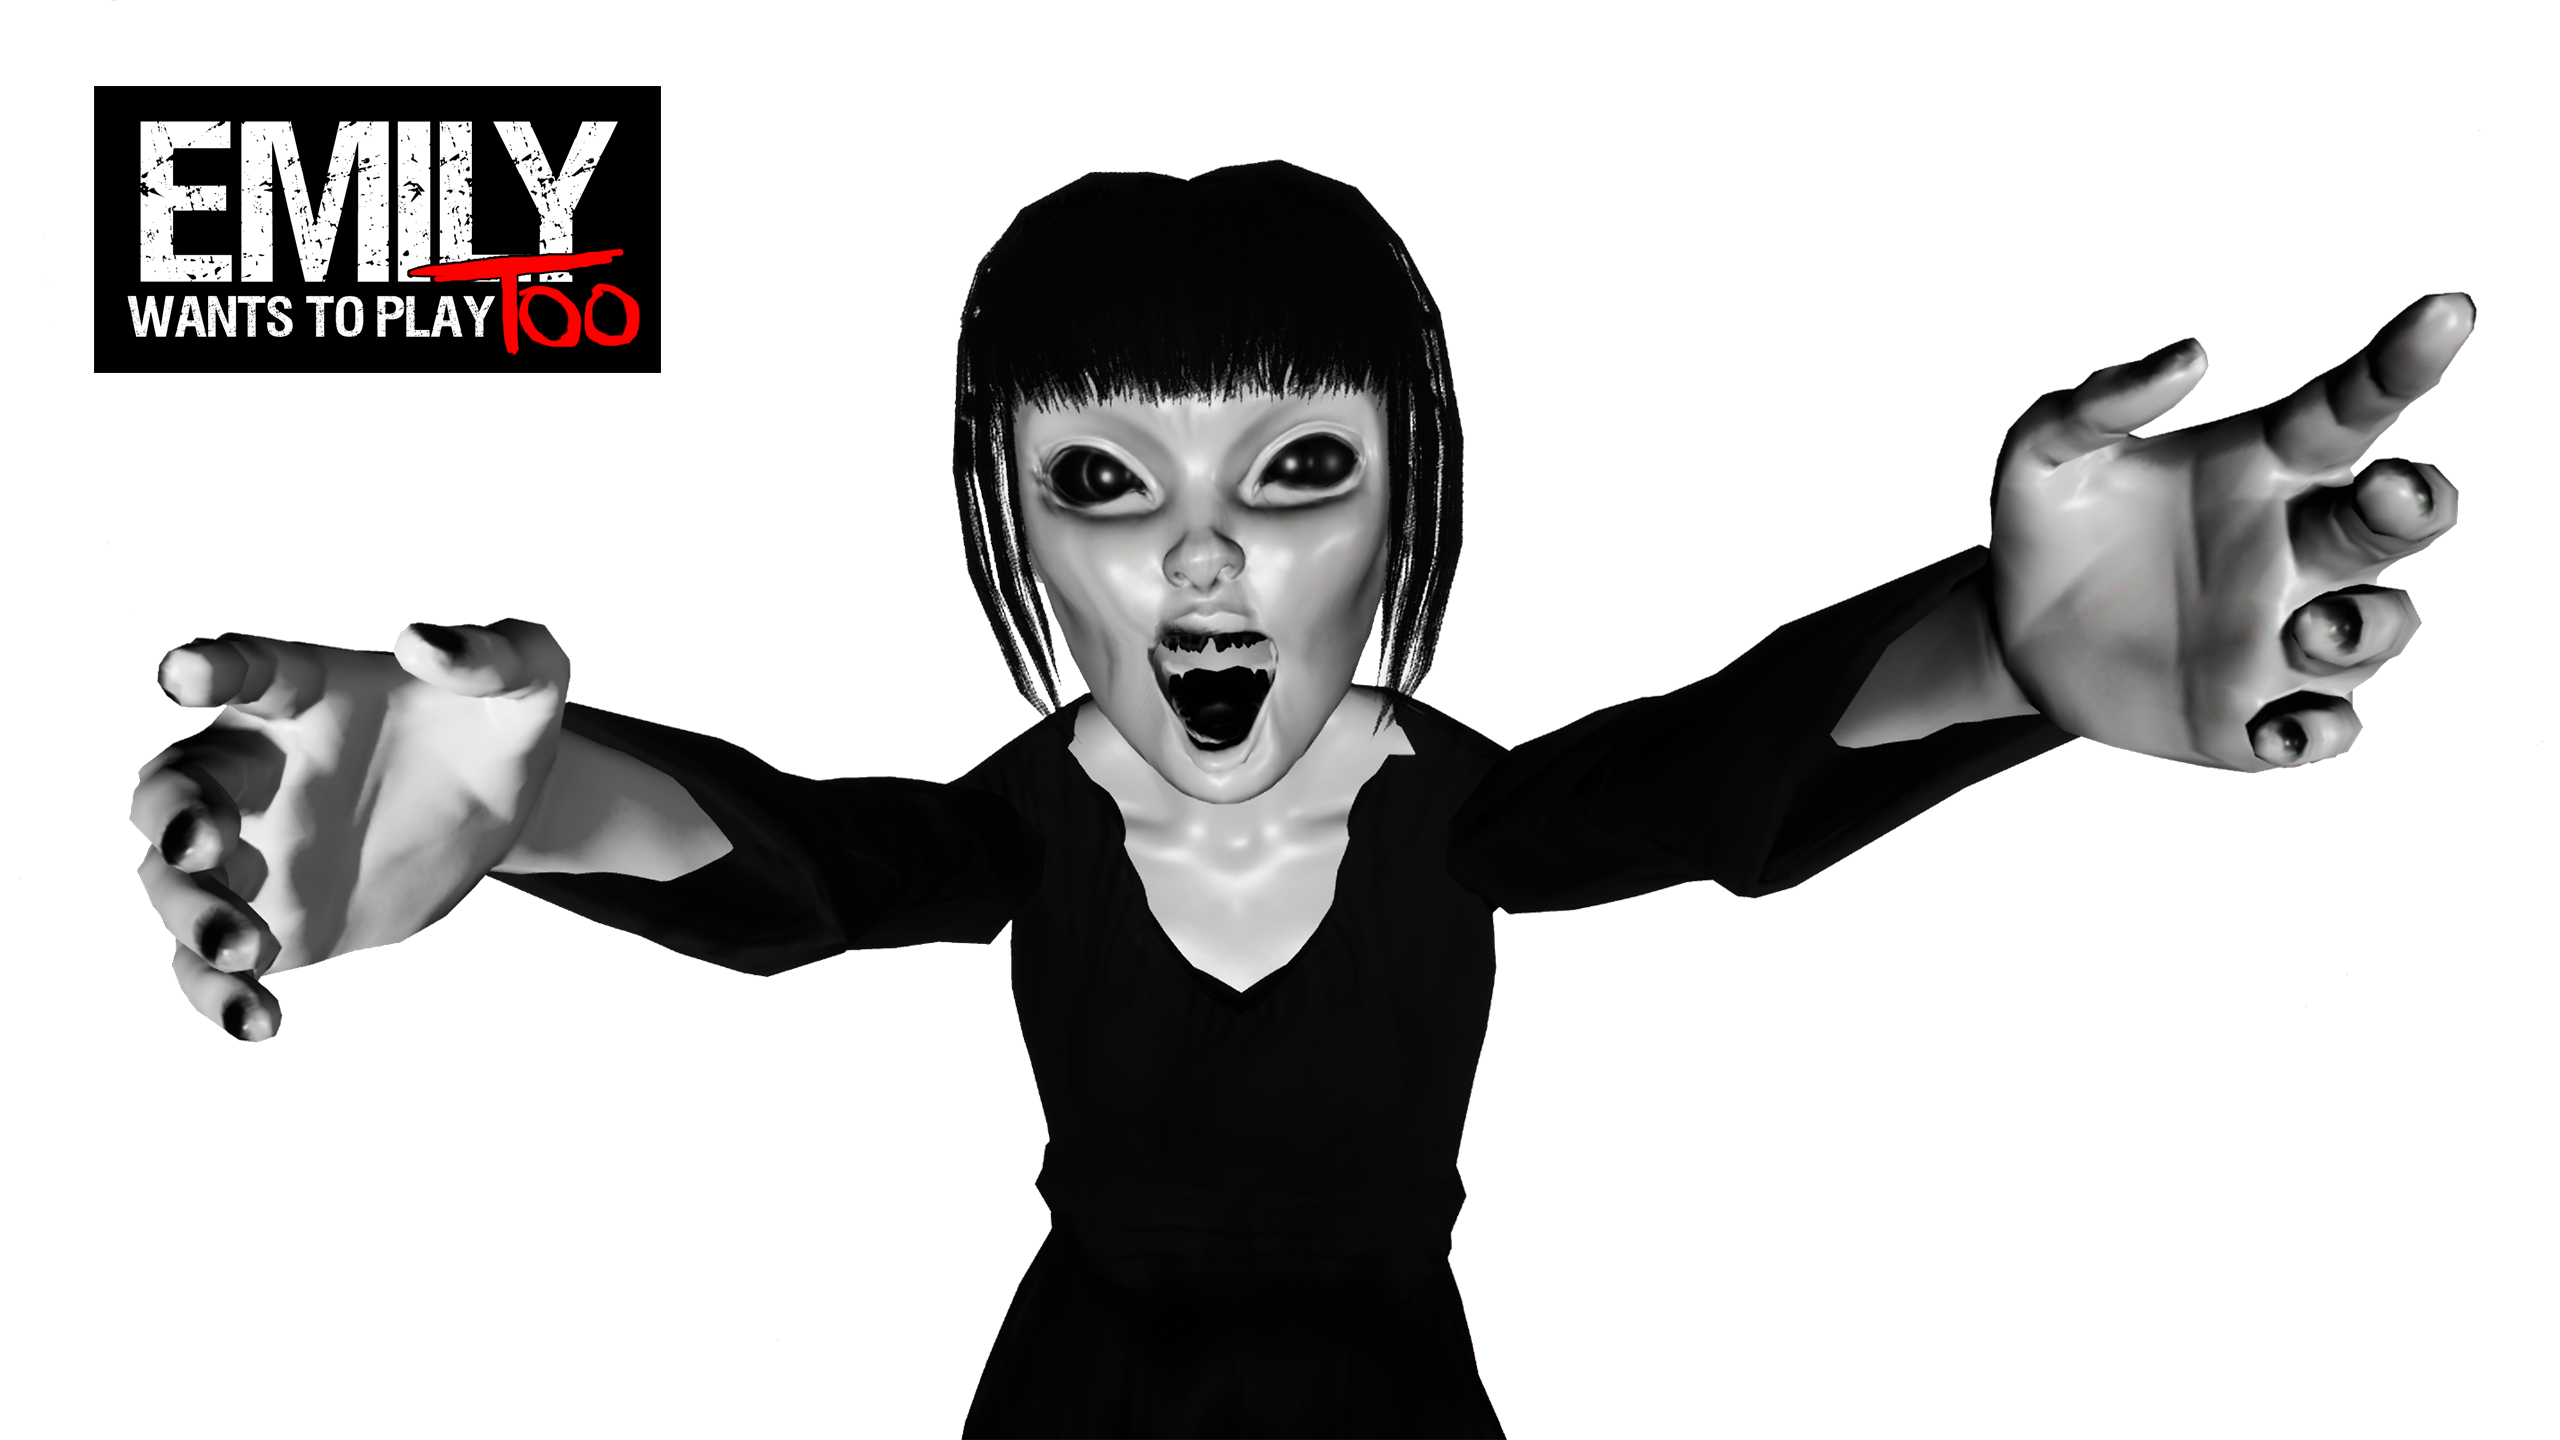 Emily wants to play logo png. Ecco i personaggi che